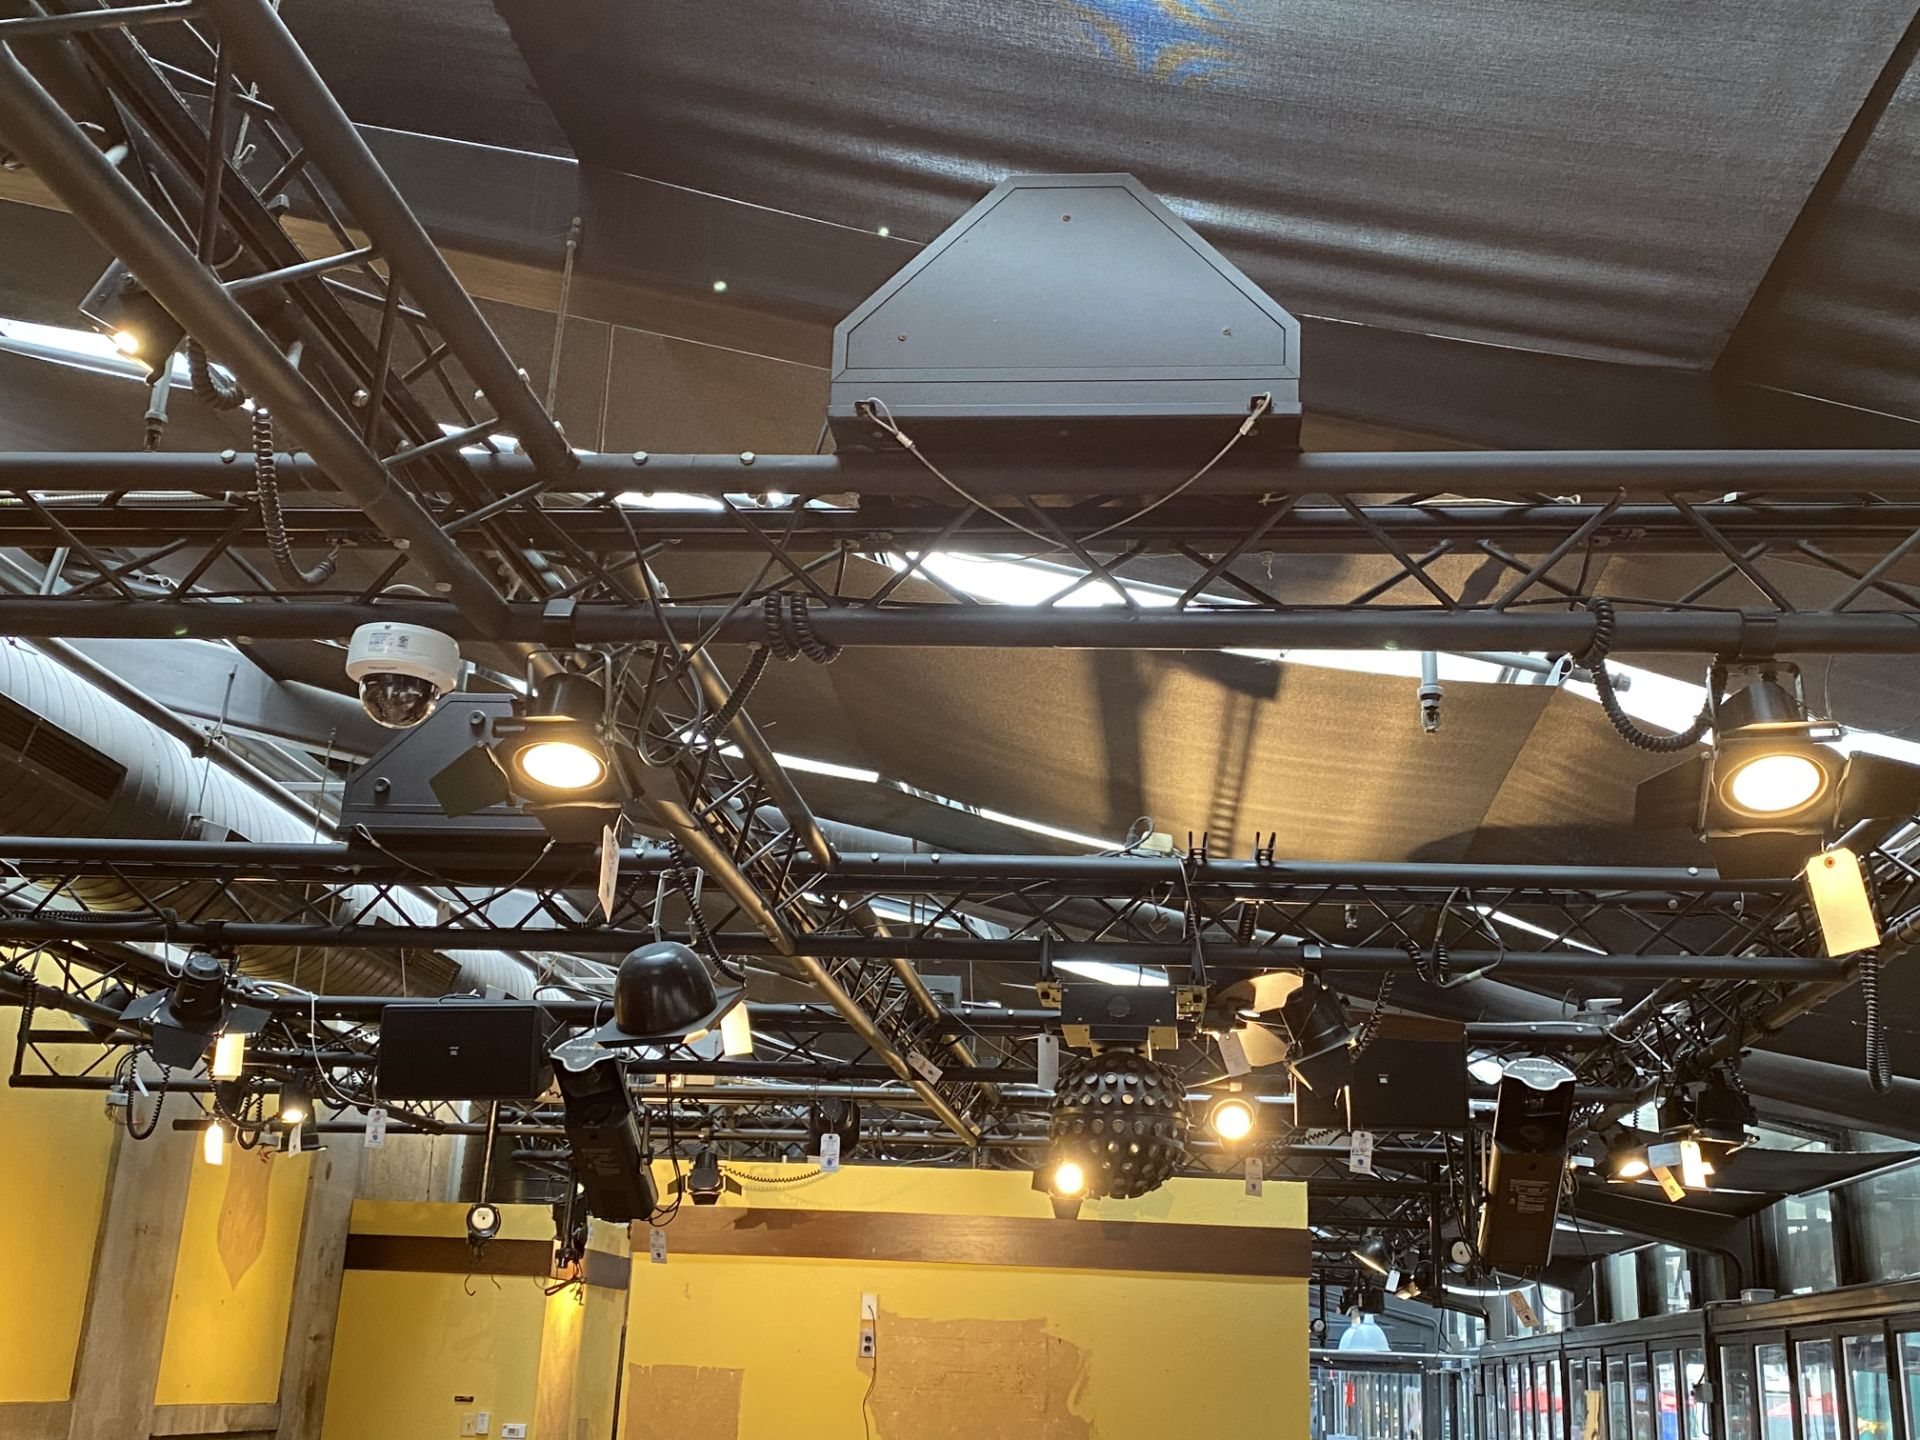 Lot 112 - Approx. 32'L x 17'W Painted Aluminum Ceiling Mounted Truss System (MUST BE TAKEN DOWN IN WORKMANLIKE